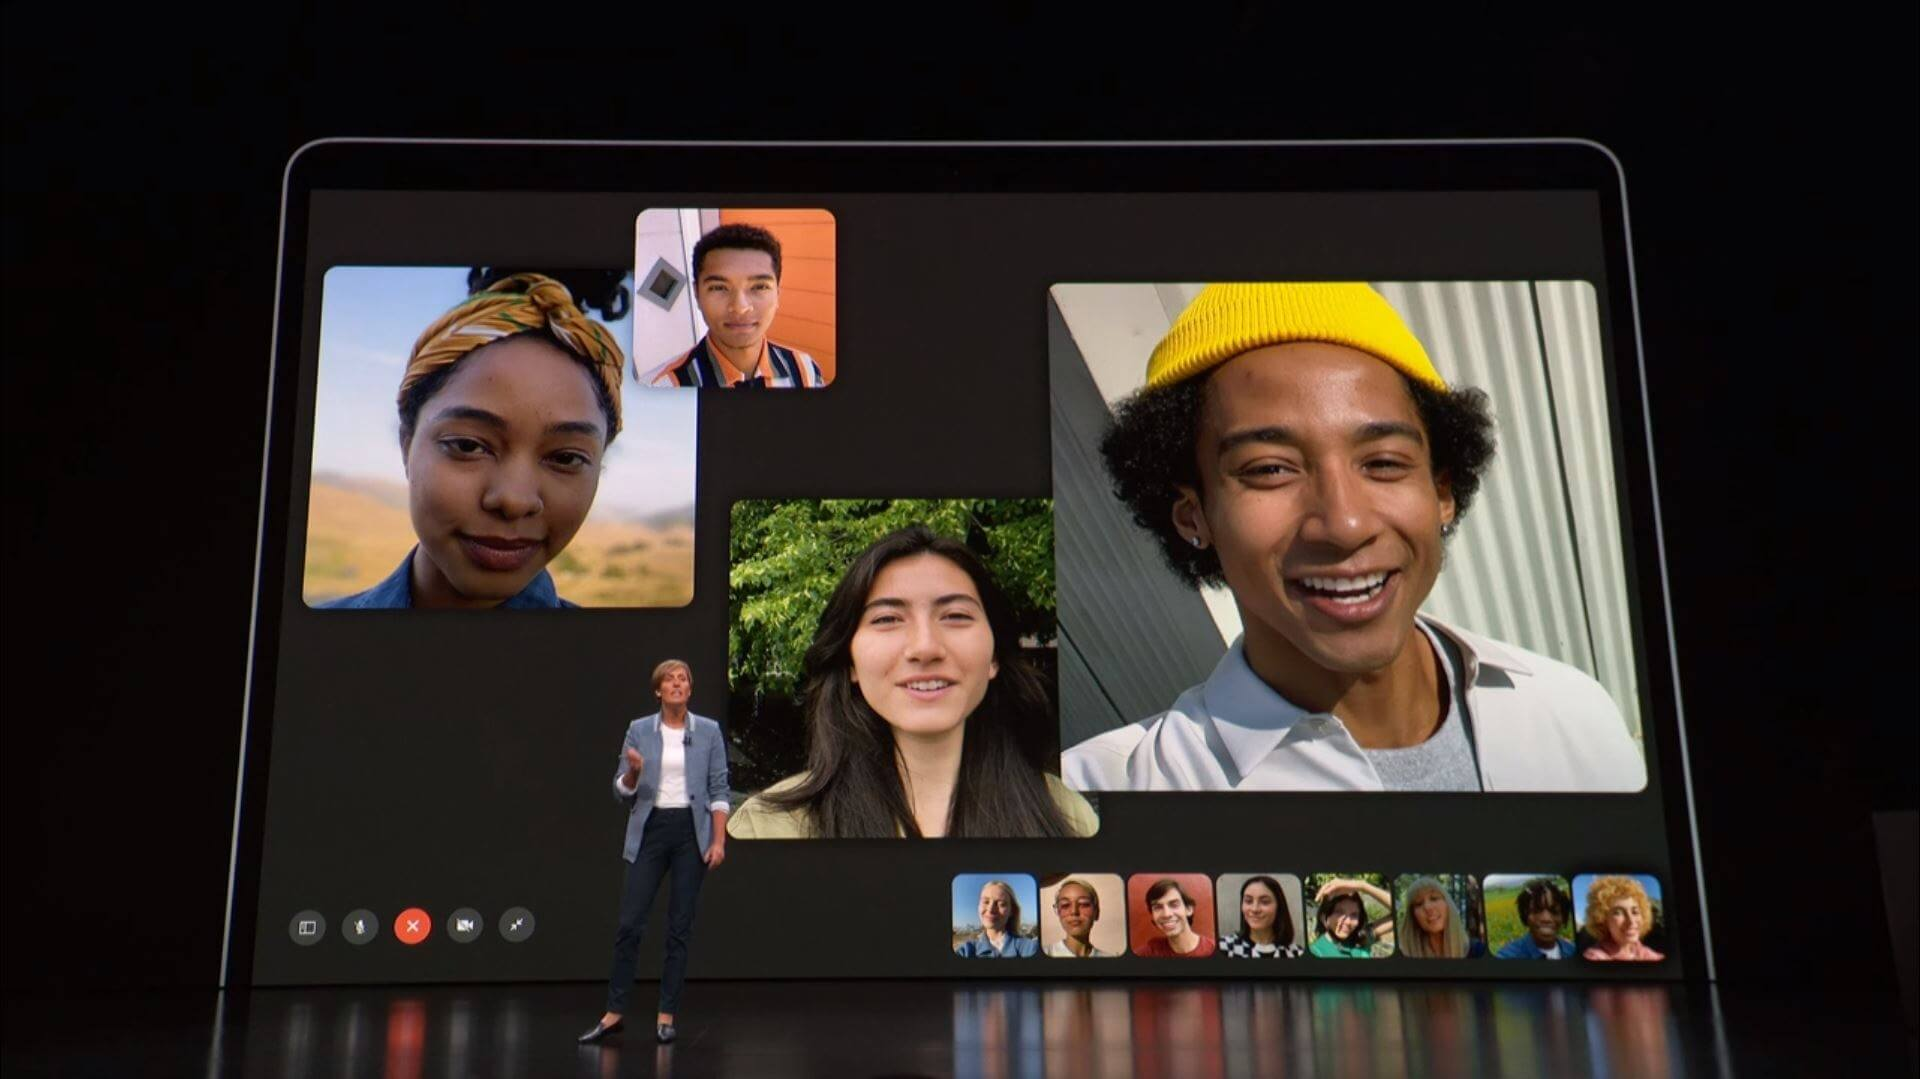 Apple releases update to prevent FaceTime spying